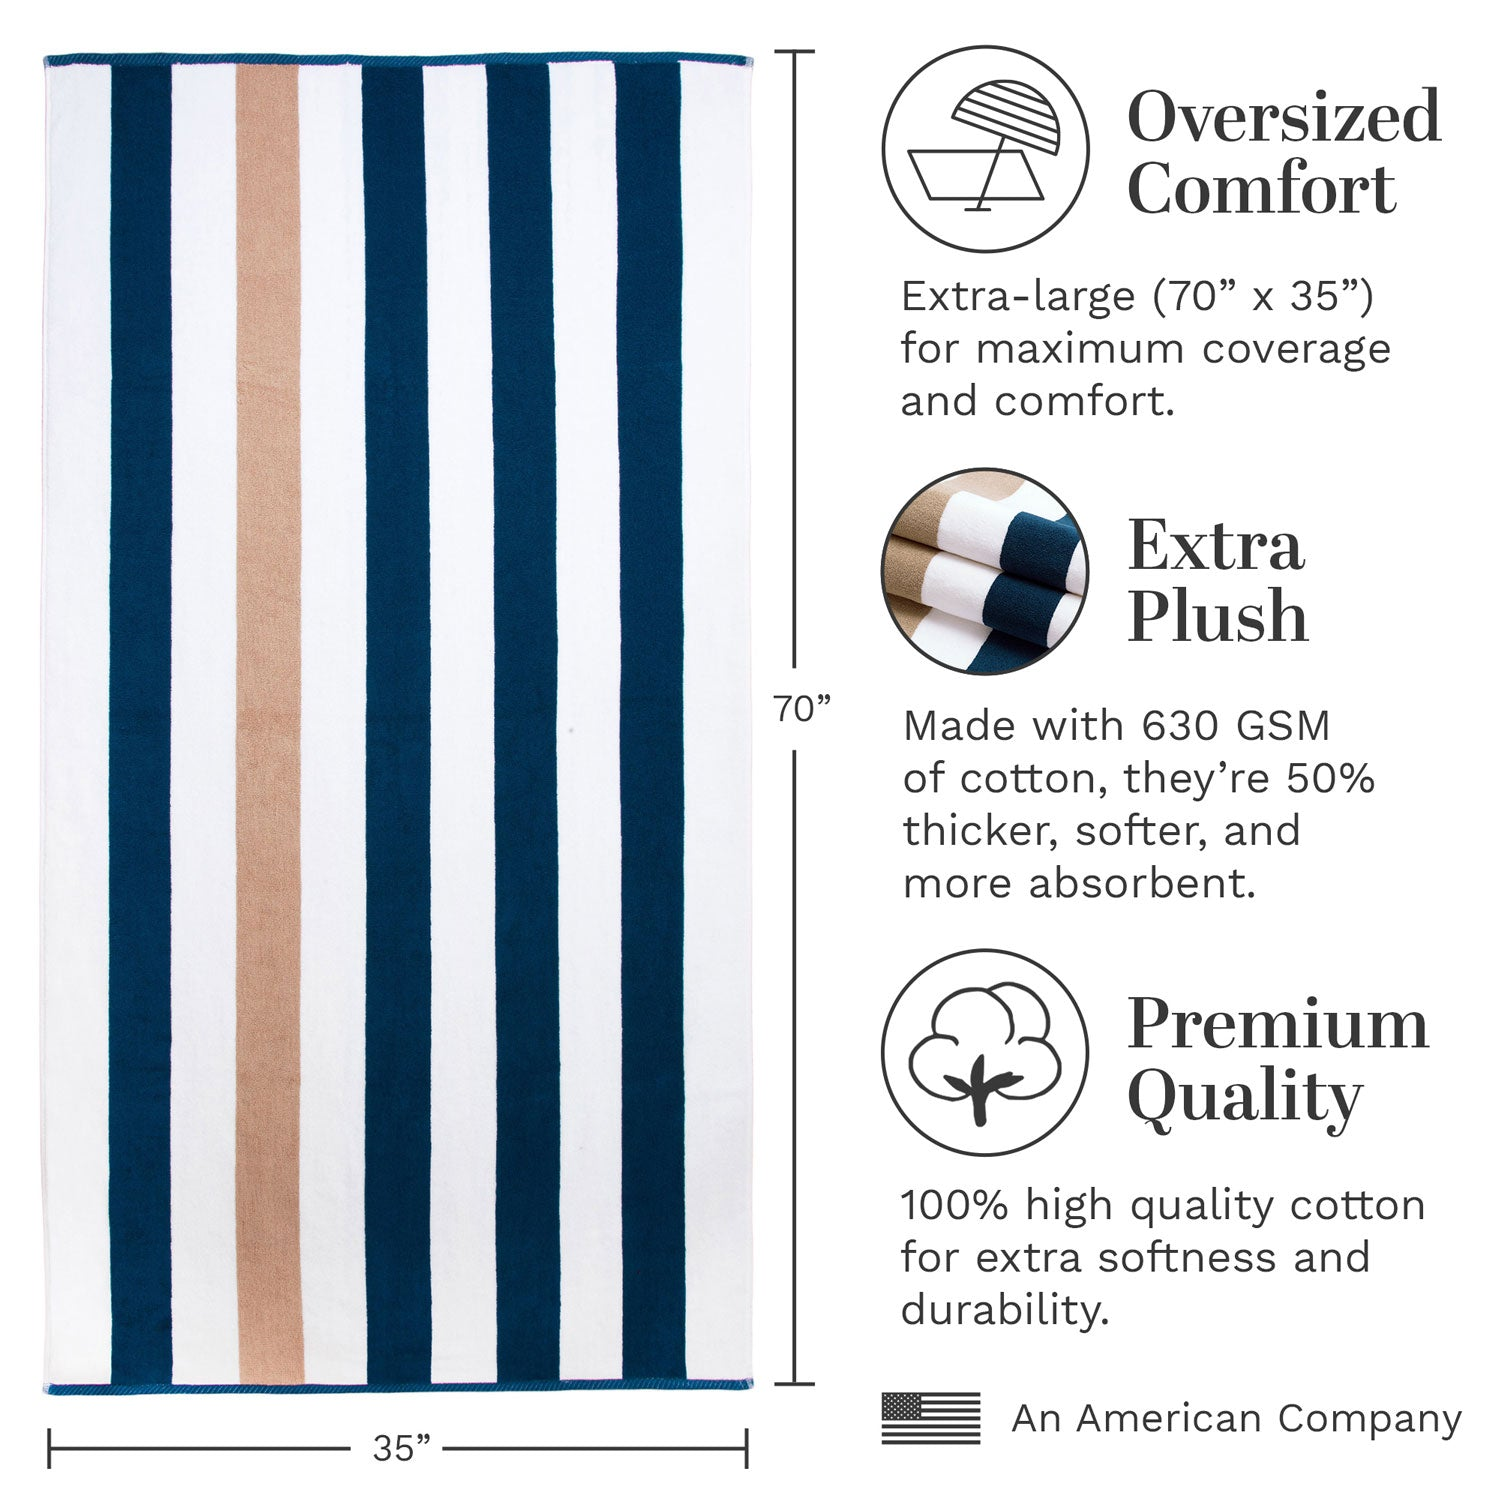 Infographic of our navy blue and tan cabana beach towel highlighting that it's extra plush, premium quality, and oversized.